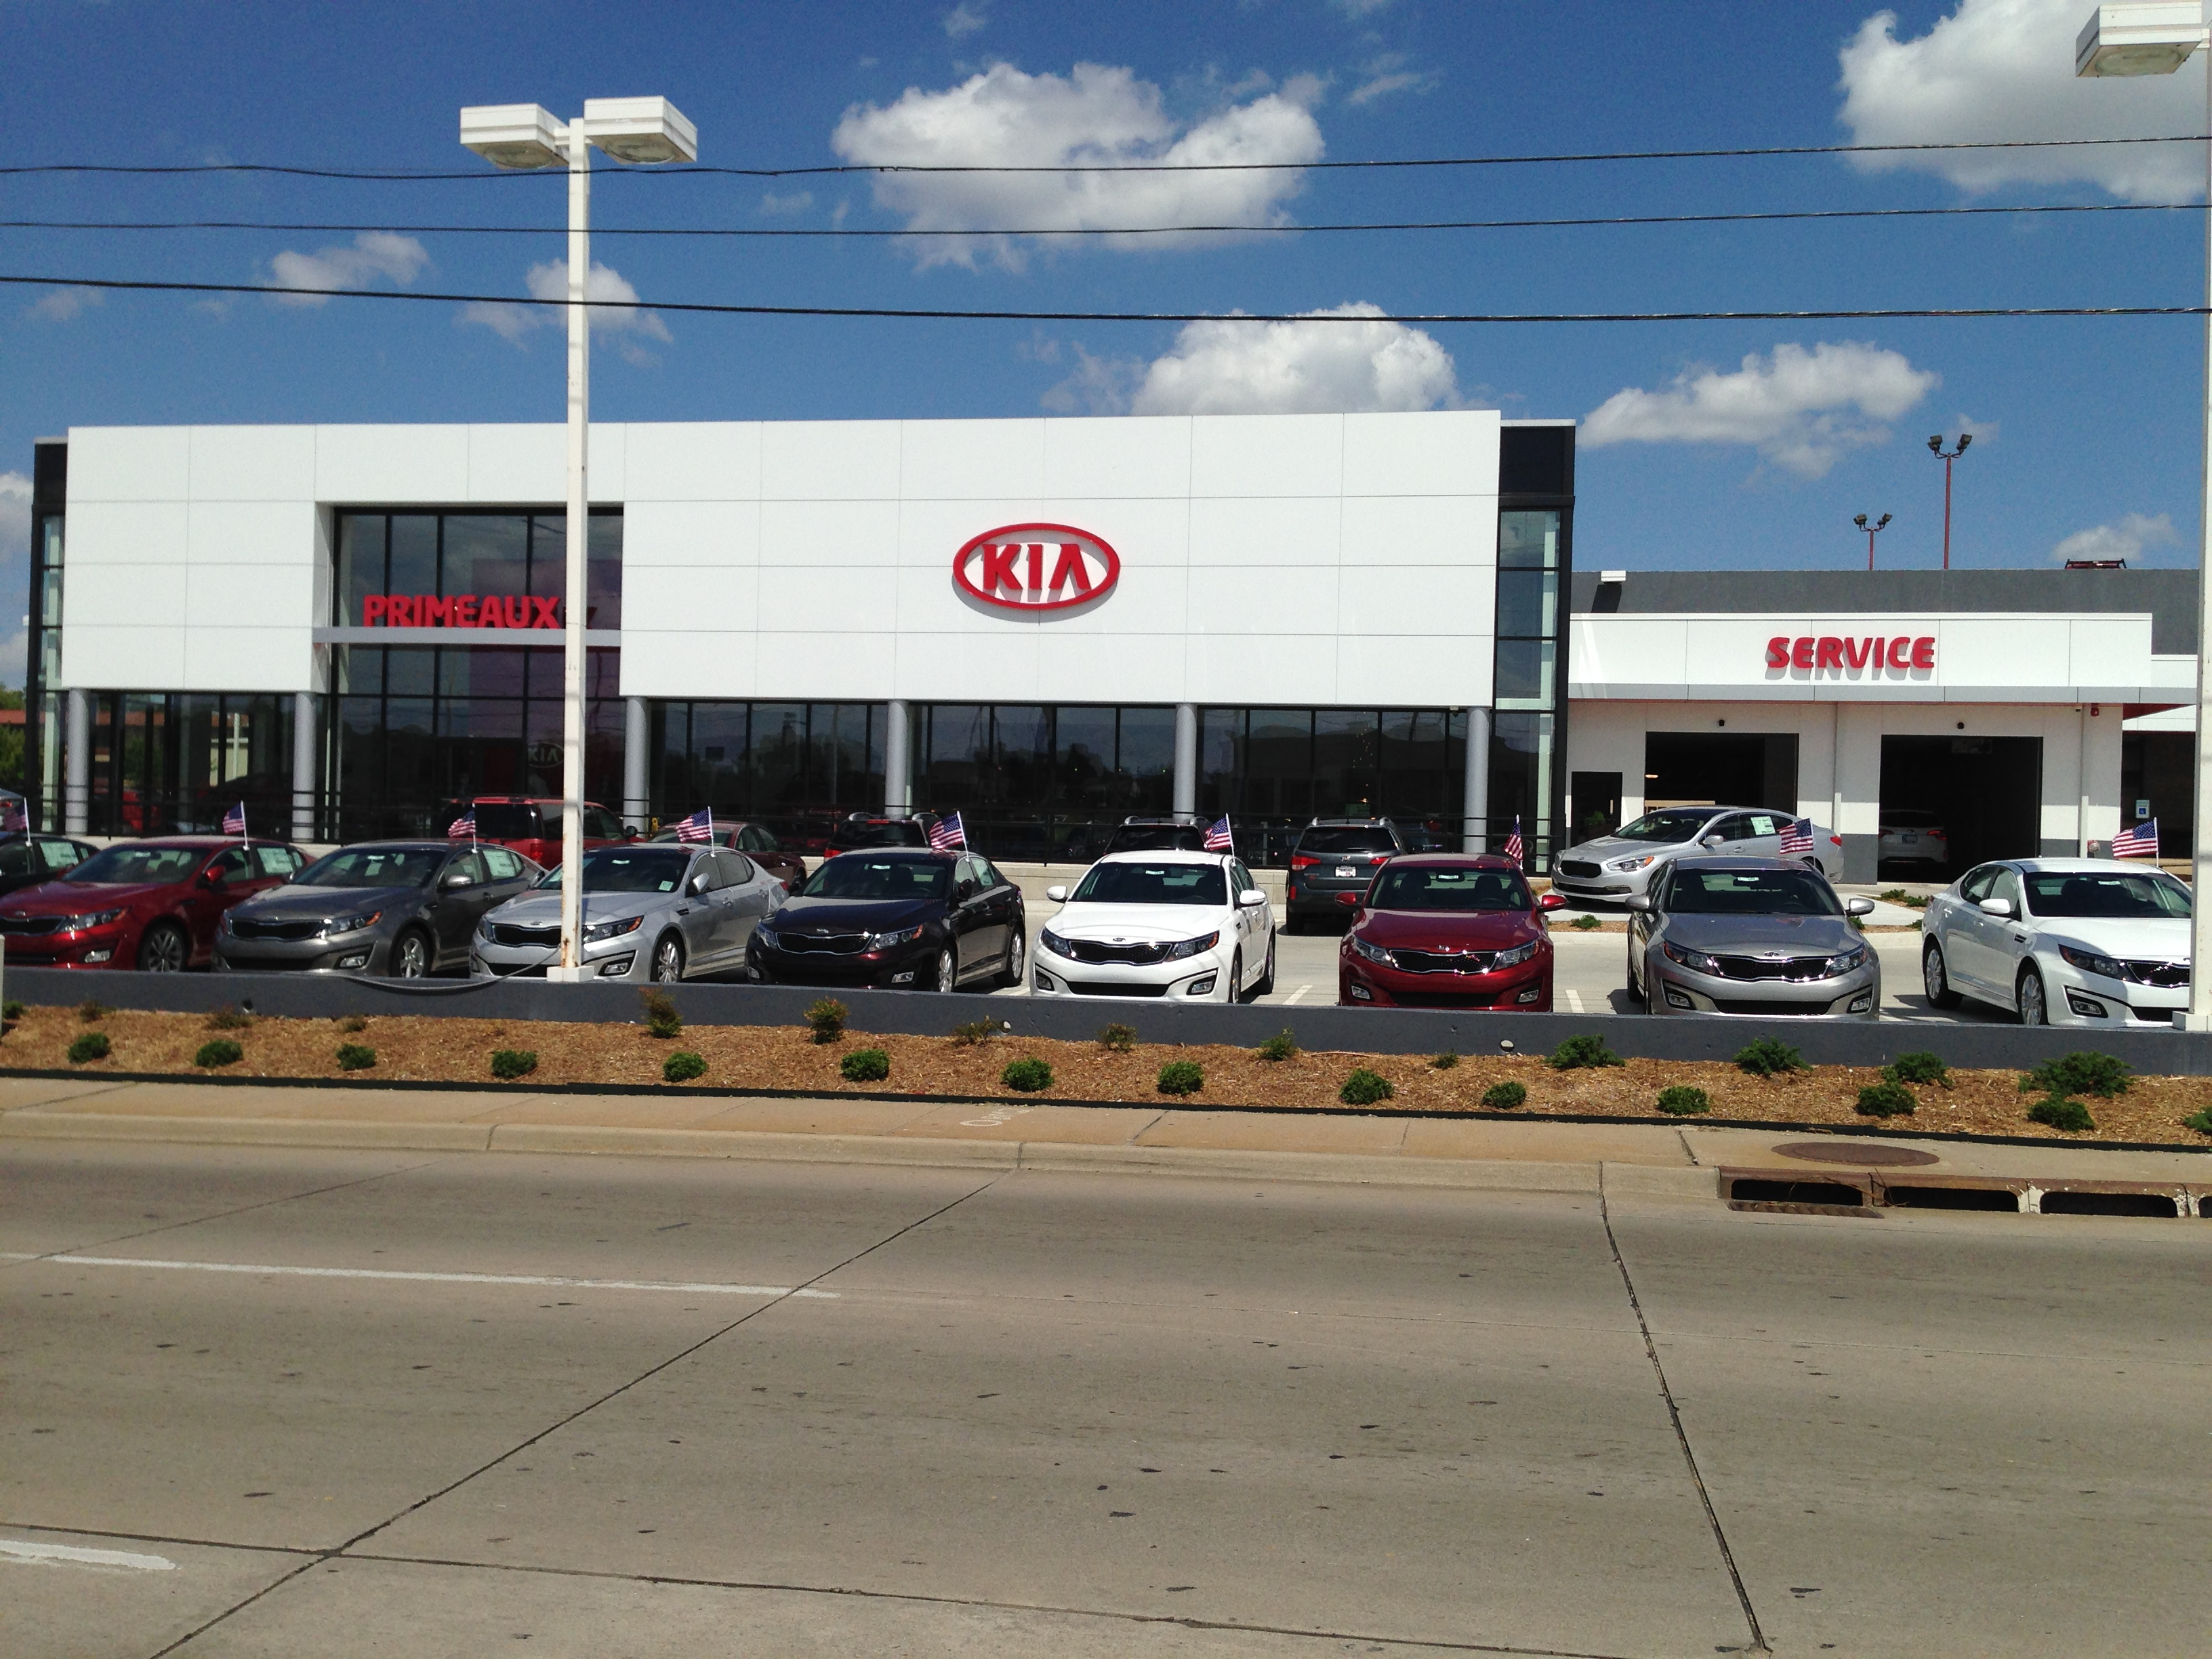 g money kia m phelan img cars in review dealerships drive car p room optima features adds first ga story new mark